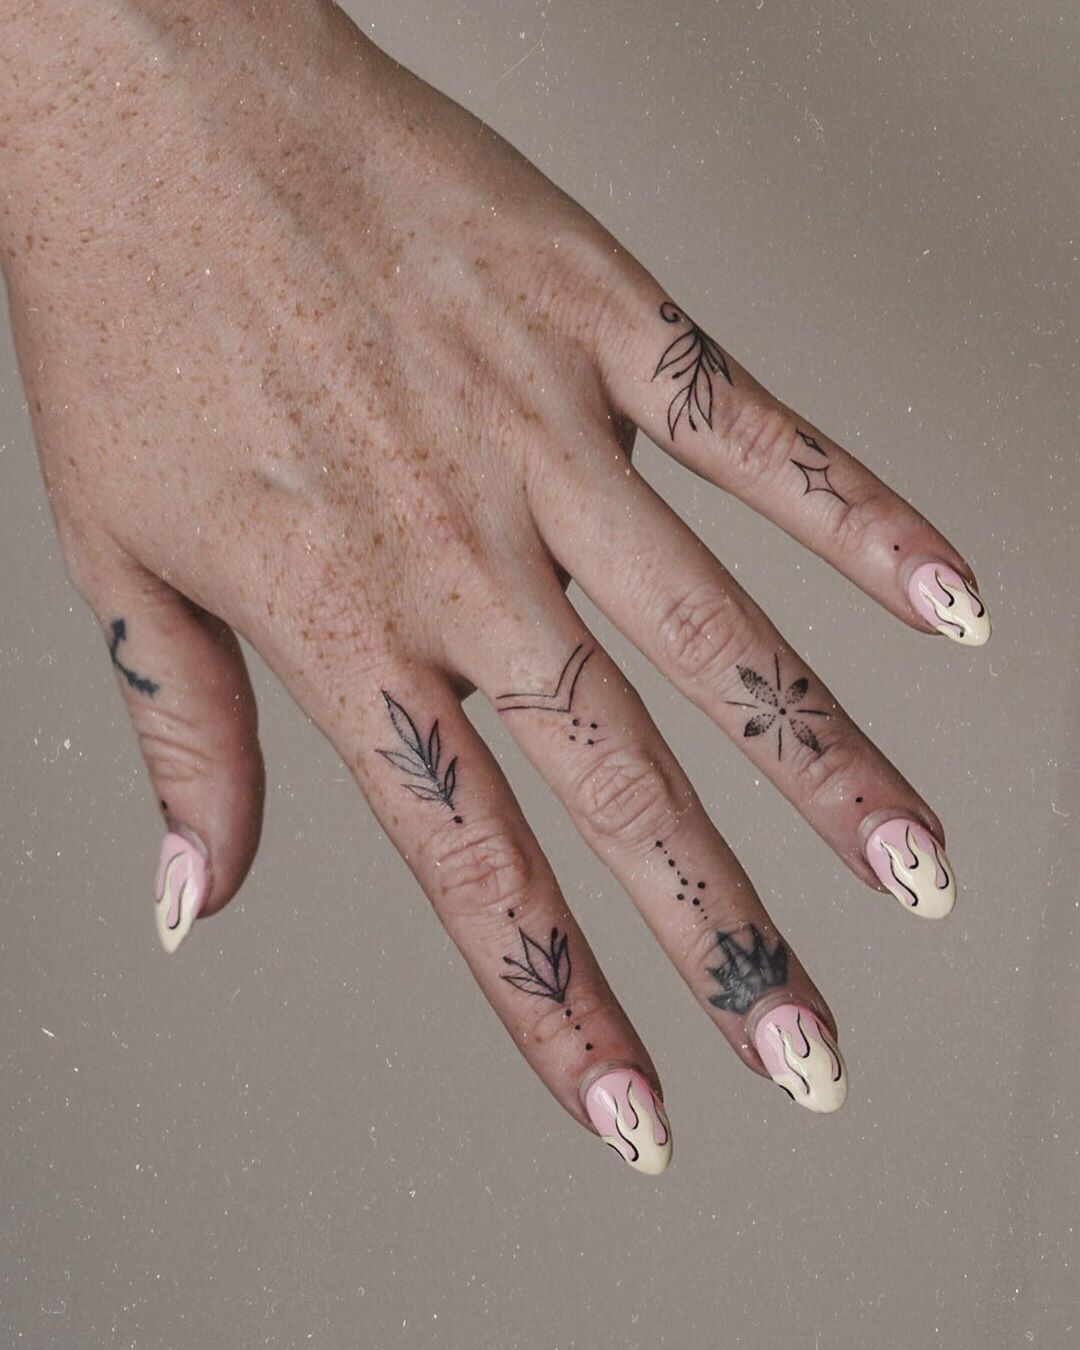 Finger Tattoos 43952 Gee Hawkes On Instagram And Some Drawn On Hand Ornaments For Riotsquadx In 2020 Small Hand Tattoos Hand Tattoos Hand Tattoos For Women